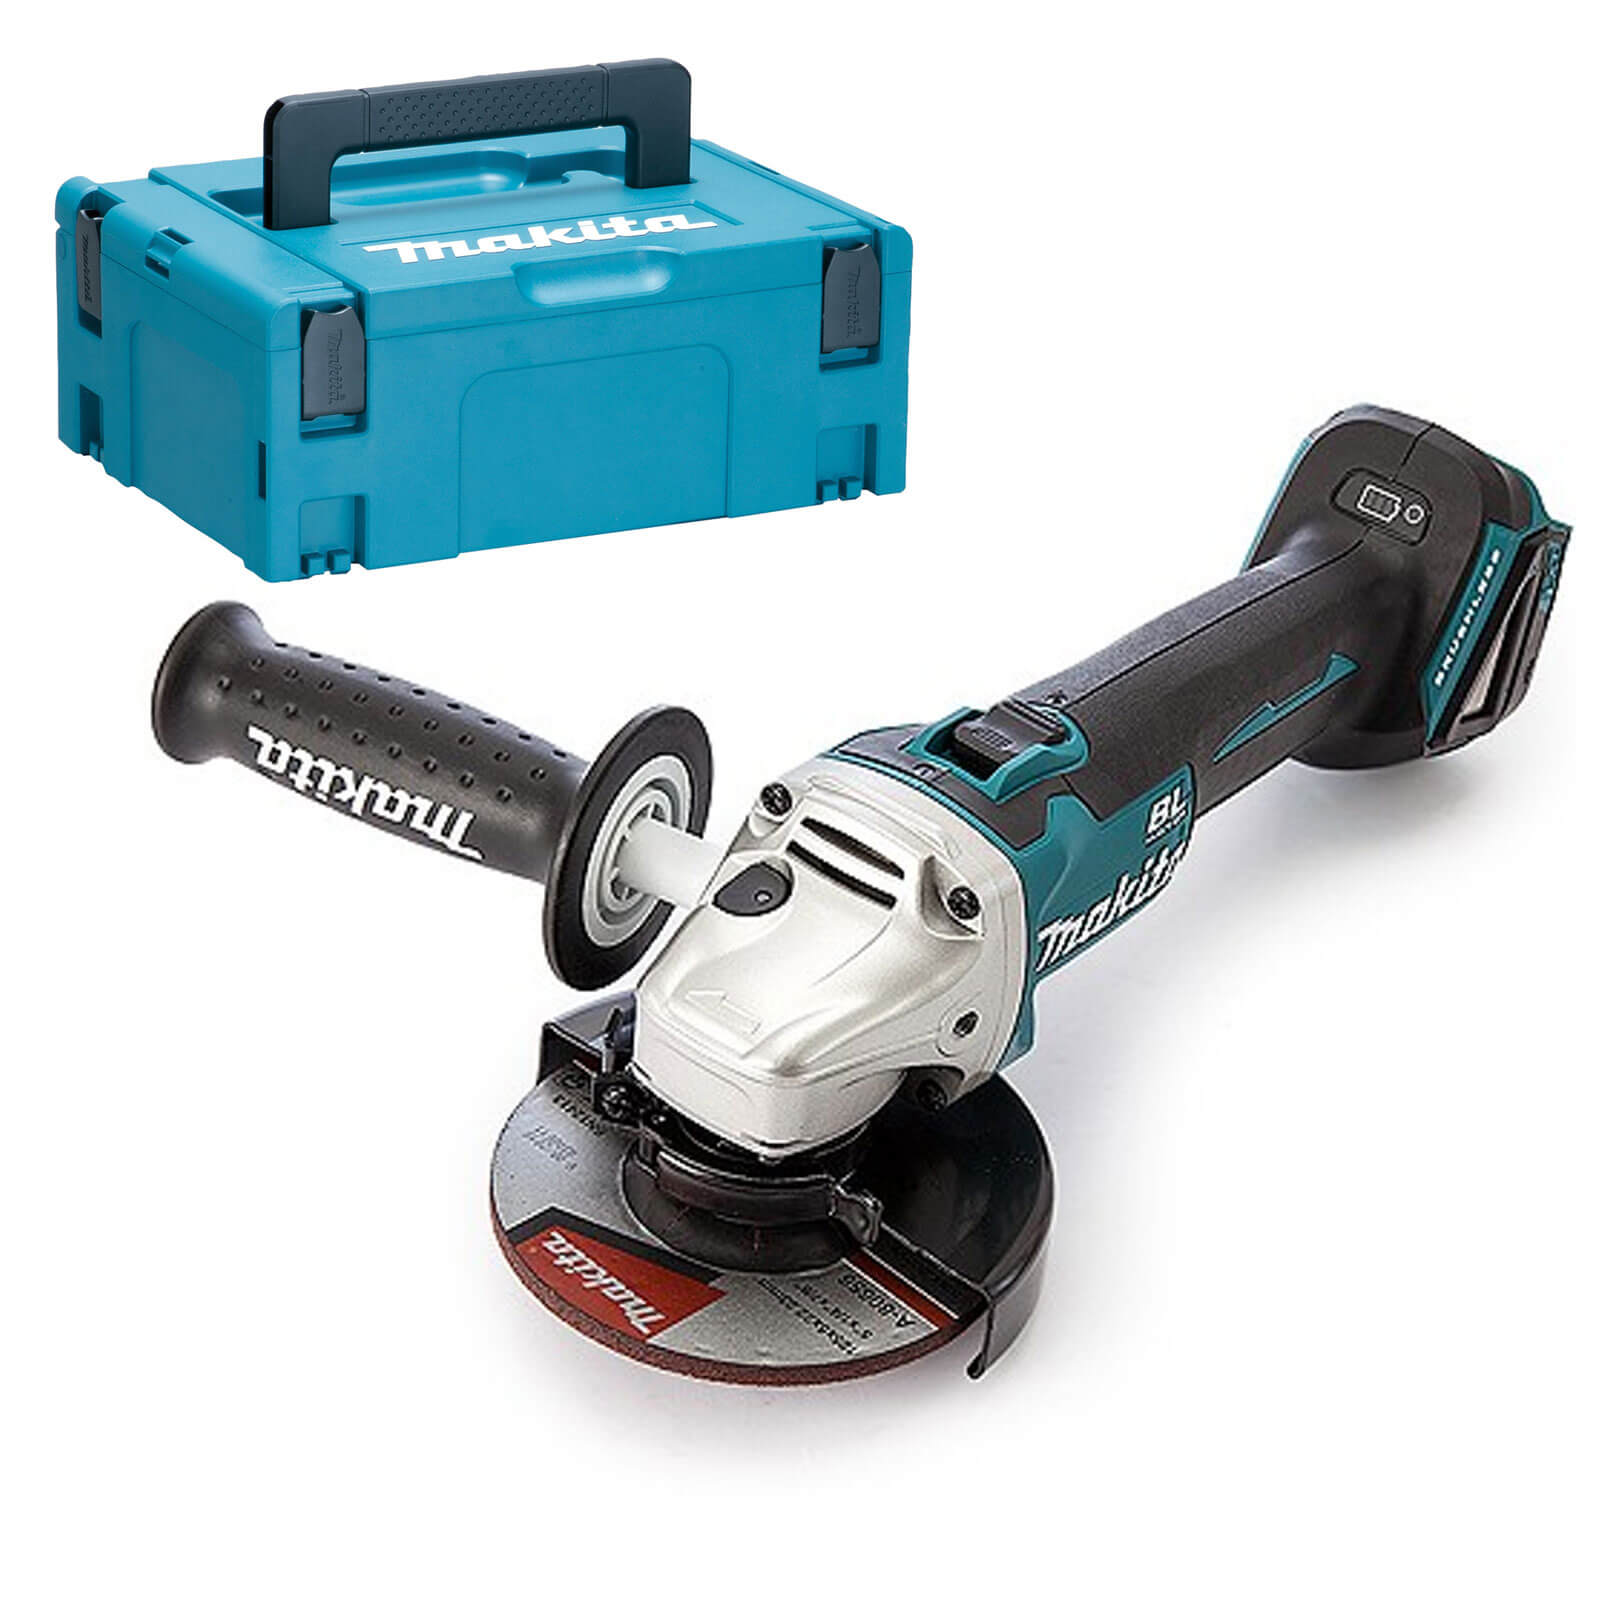 makita 125 interesting makita suction hood for angle grinder mm with makita 125 makita pz. Black Bedroom Furniture Sets. Home Design Ideas